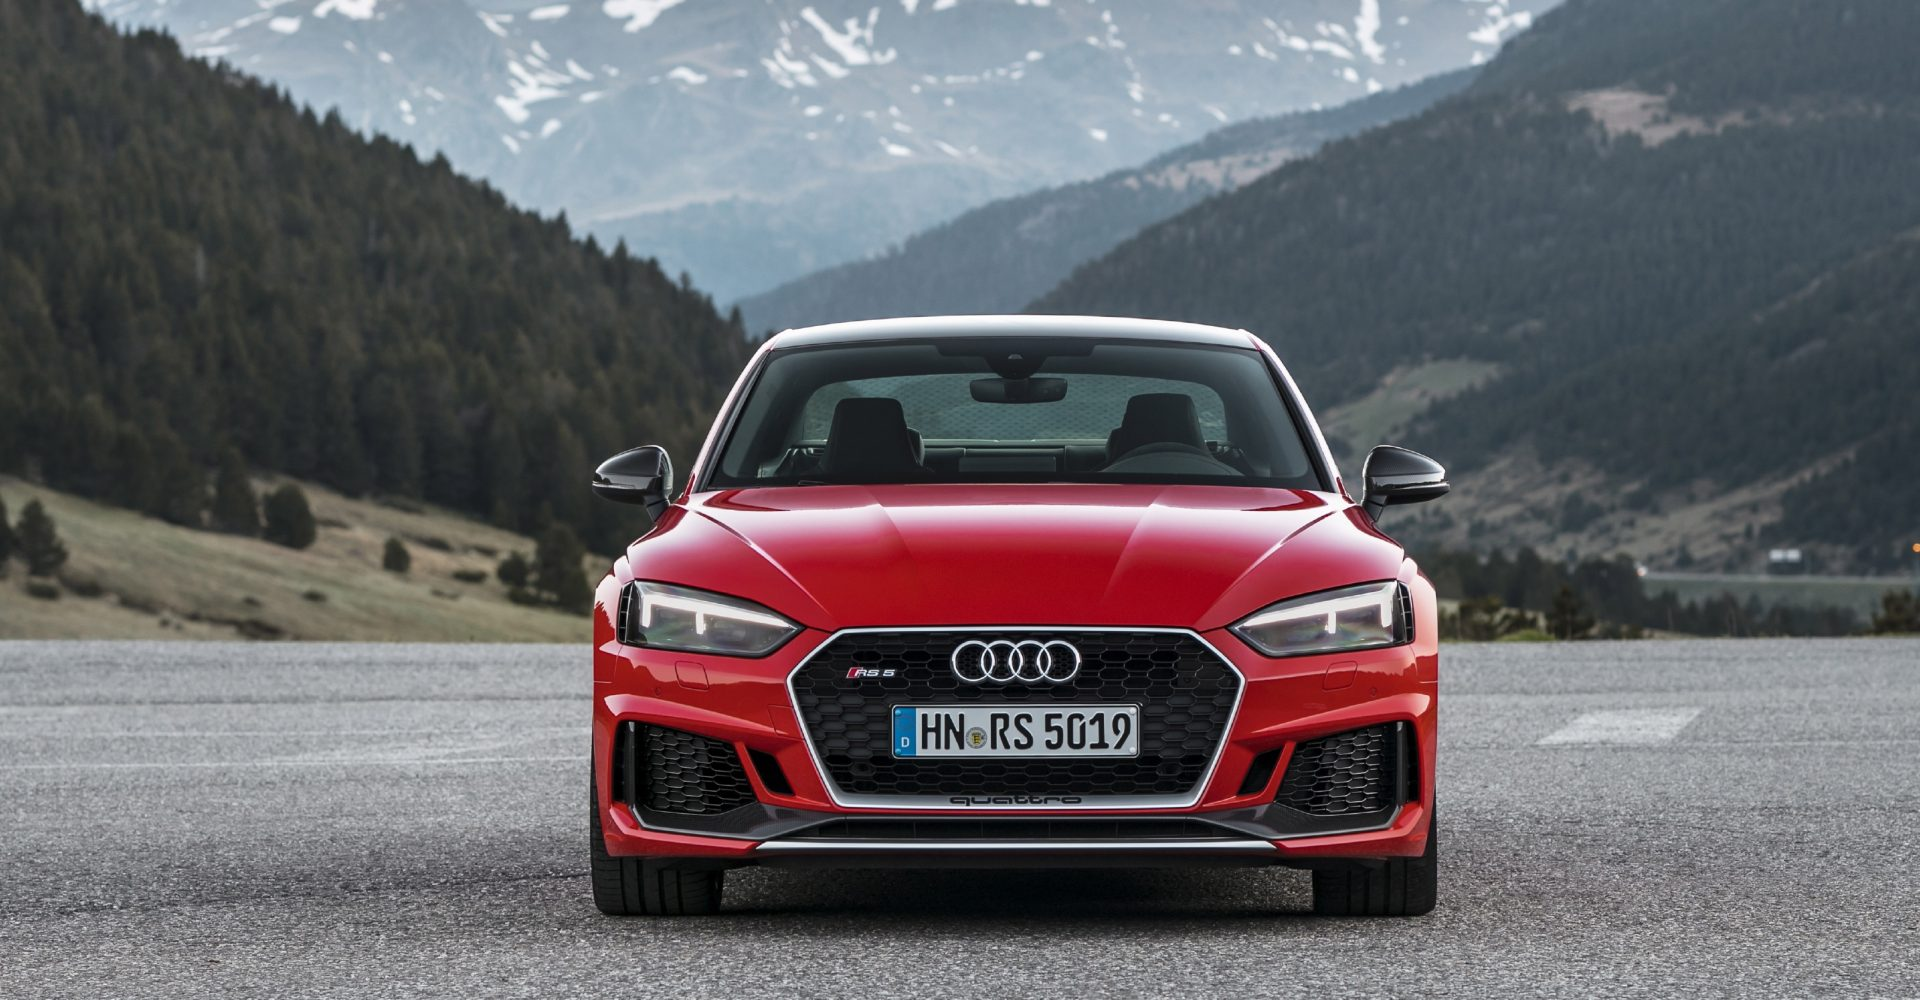 Audi gives the RS5 and RS4 Avant more presence with Carbon Editions